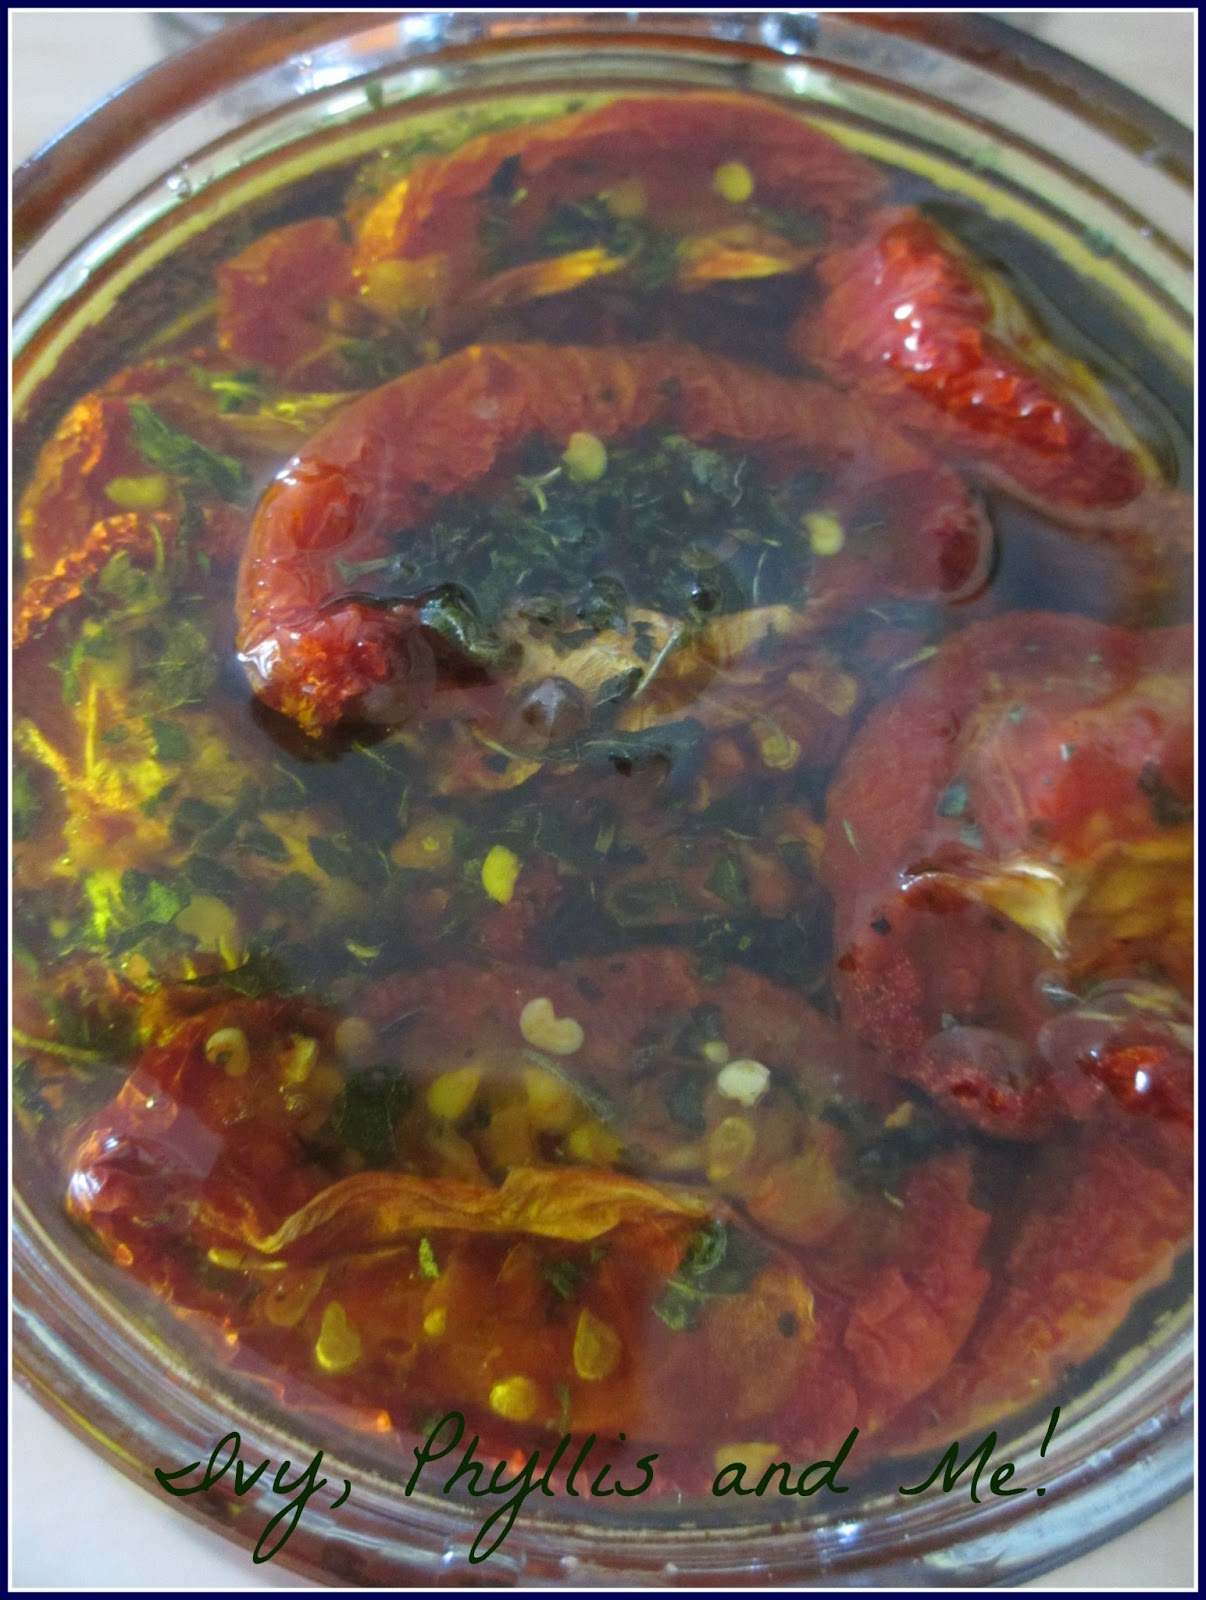 Ivy, Phyllis and Me!: SUN DRIED TOMATOES